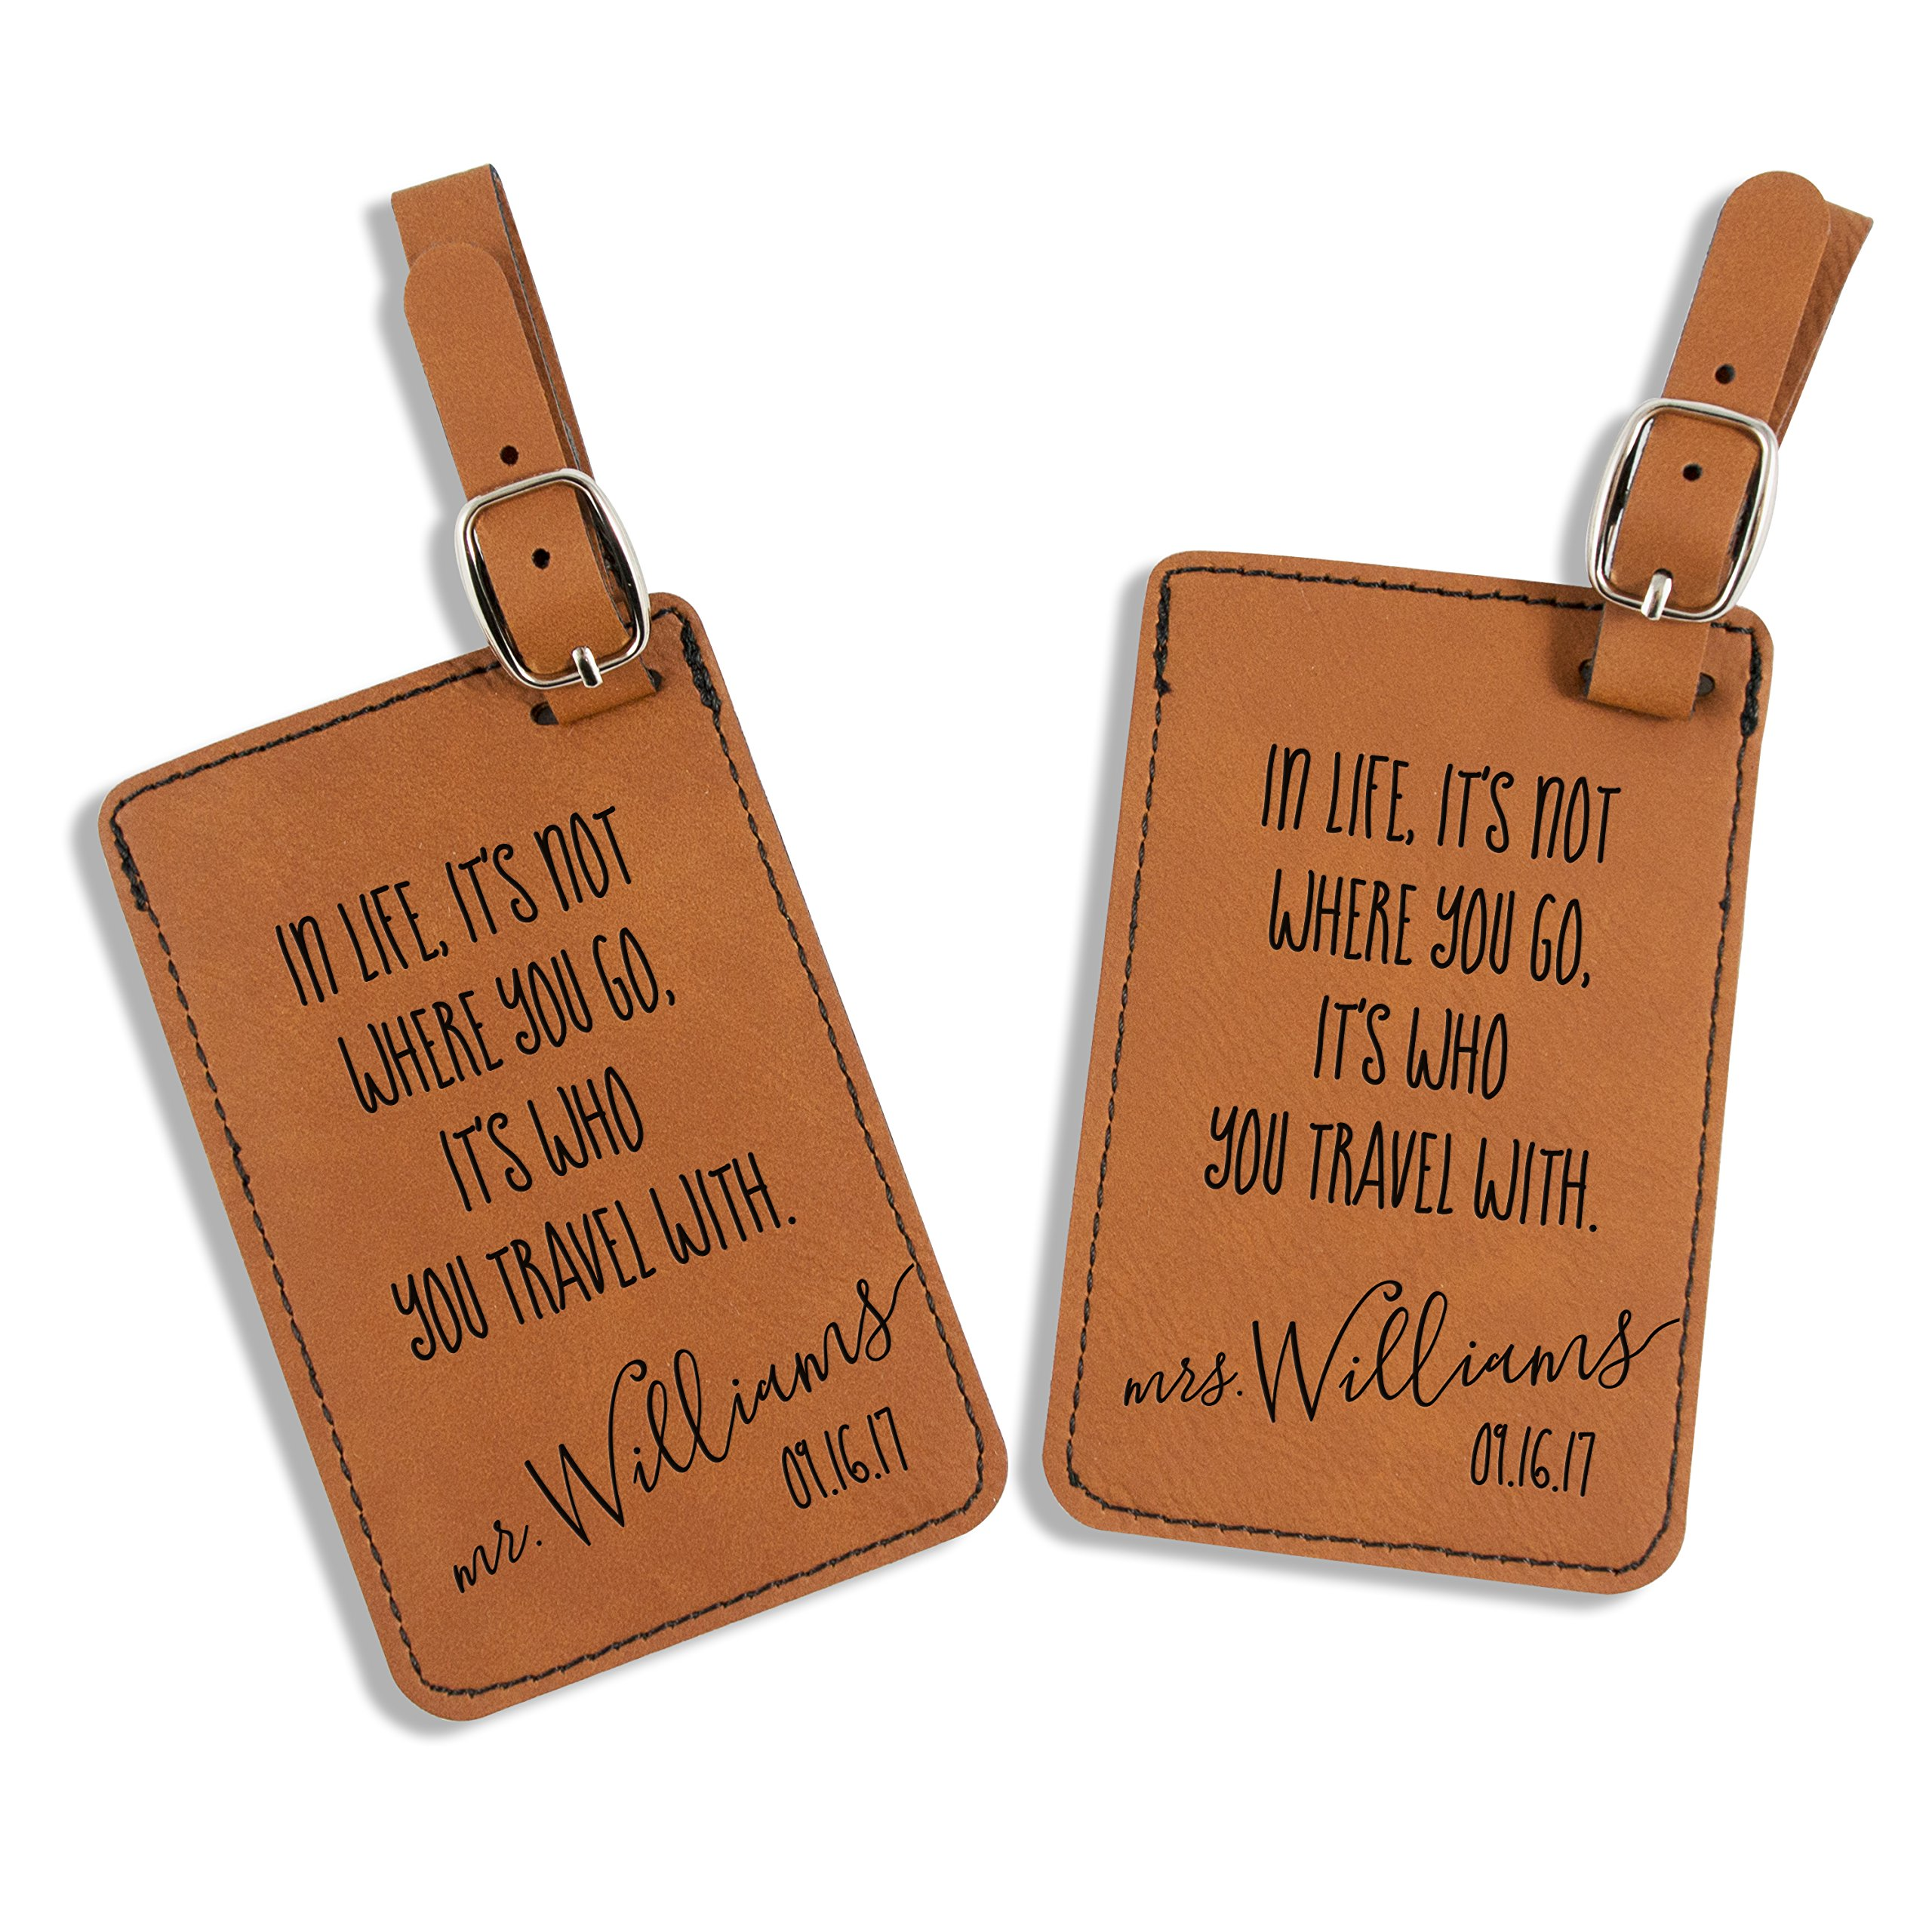 Mrs. MyLaurie Mr and Mrs Luggage Tags - Wedding Gift - Travel Quote Luggage Tags - Personalized - Honeymoon - His and Hers Luggage Tags - Bag Tags (Rawhide Brown)